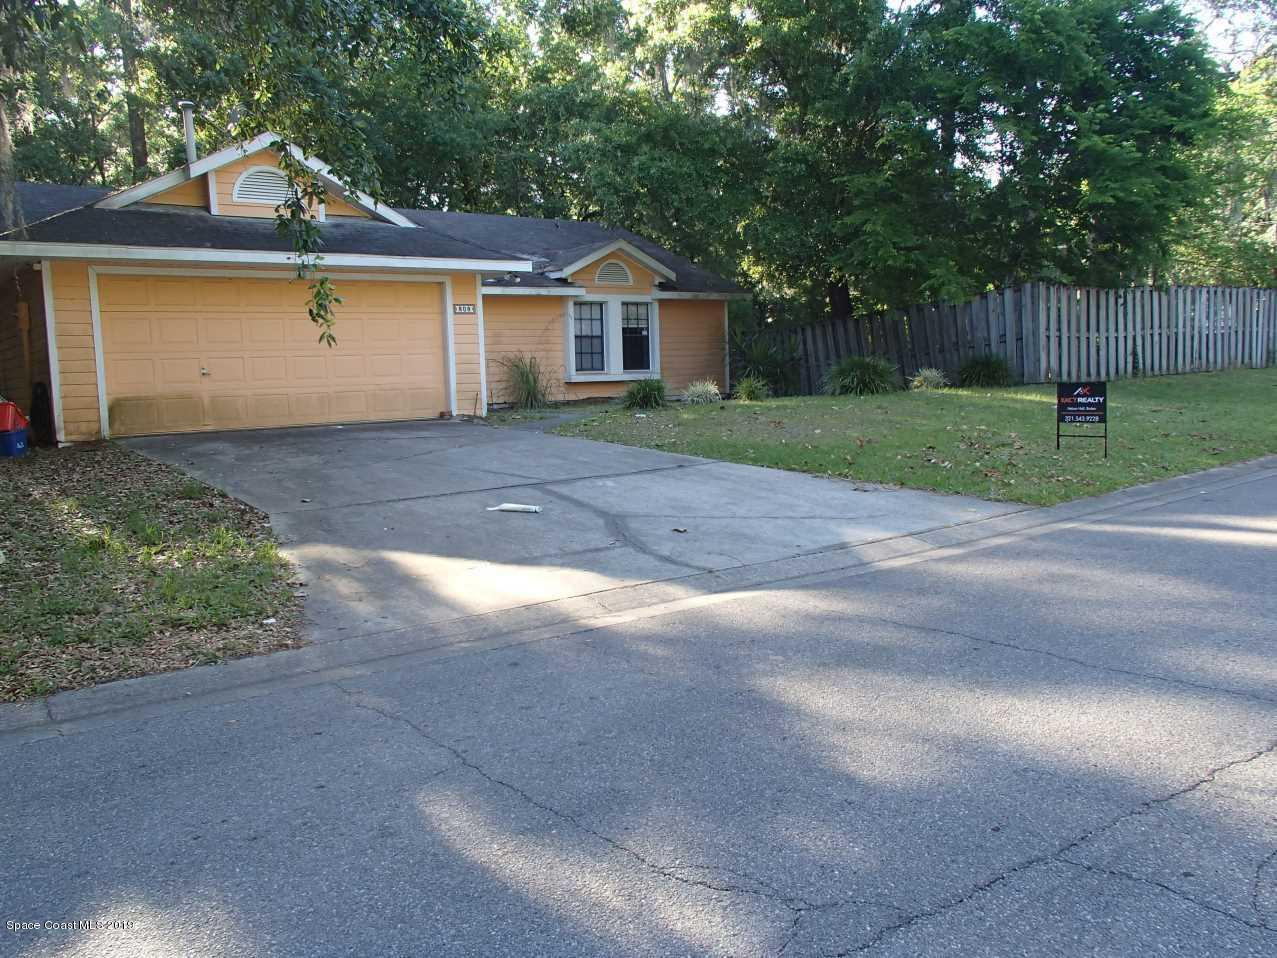 House for Sale at 808 SW 80th 808 SW 80th Gainesville, Florida 32608 United States